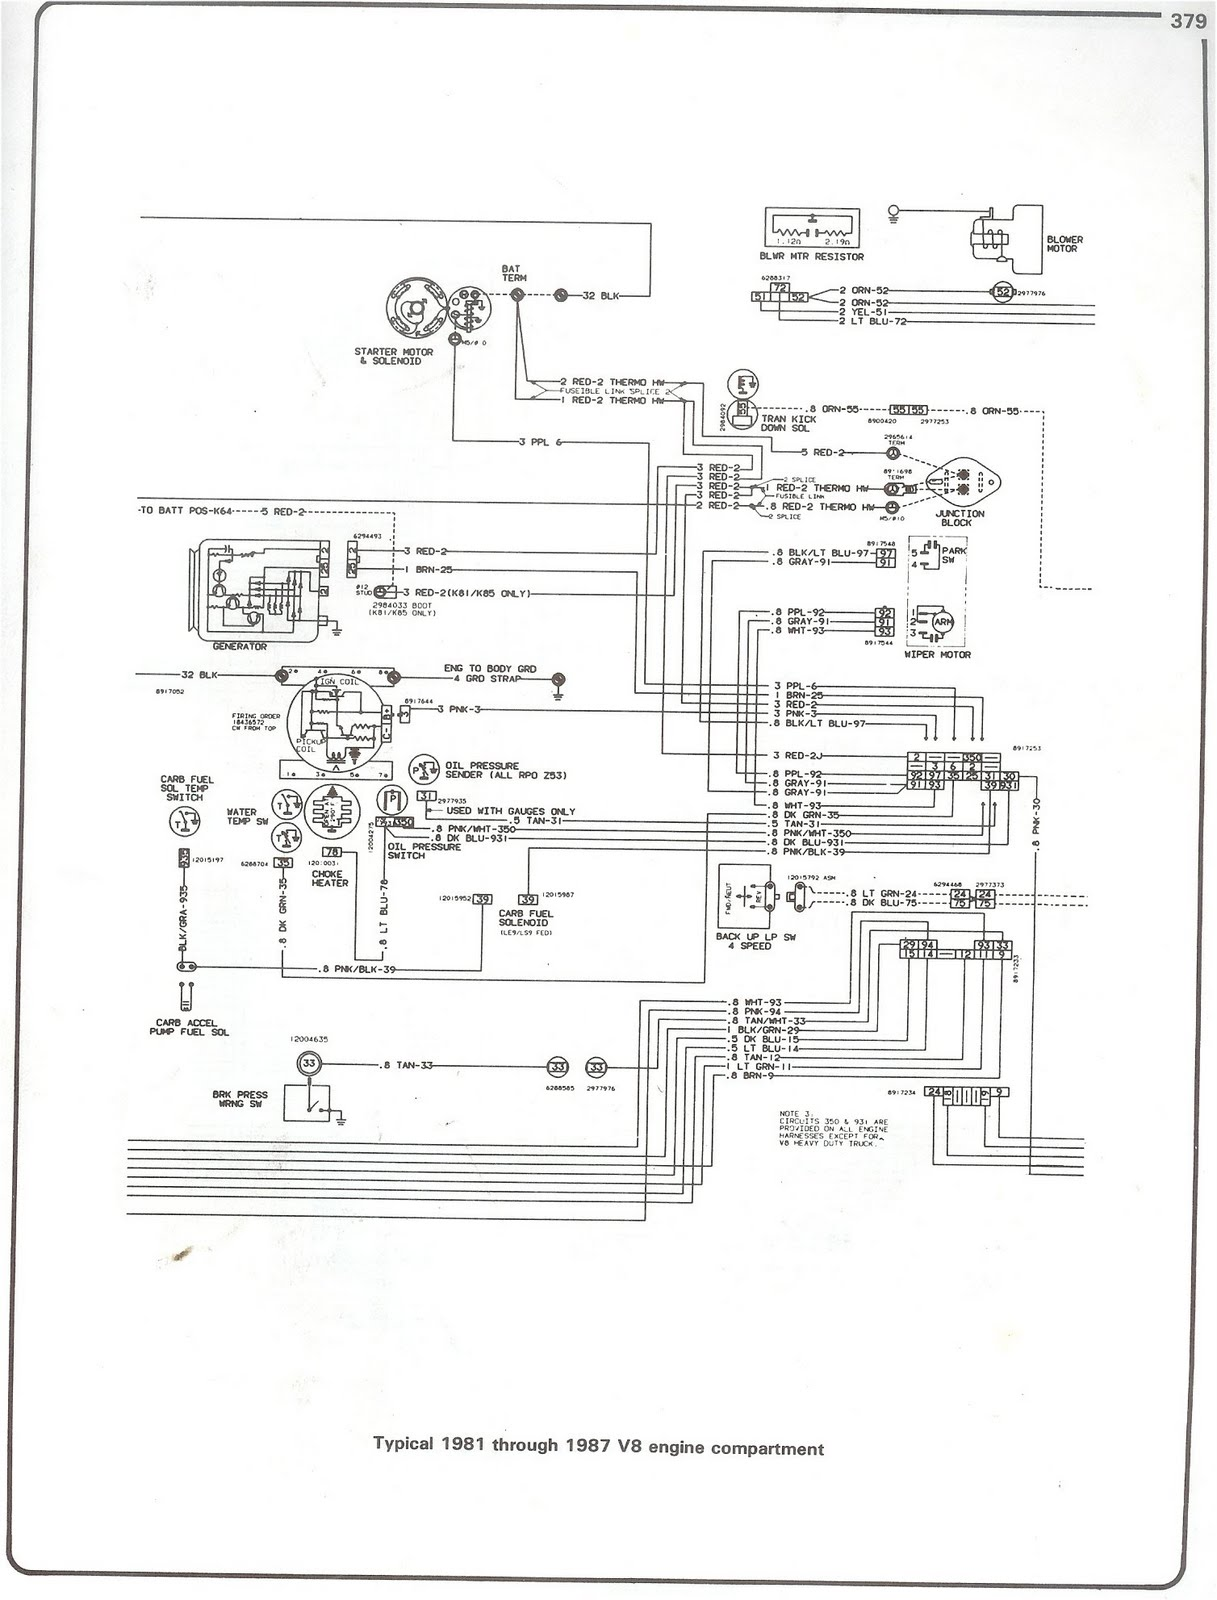 91 S10 Fuse Box 1981 Gm Diagram Engine Control Wiring Library Rh 48 Yoobi De Chevy Panel 2006